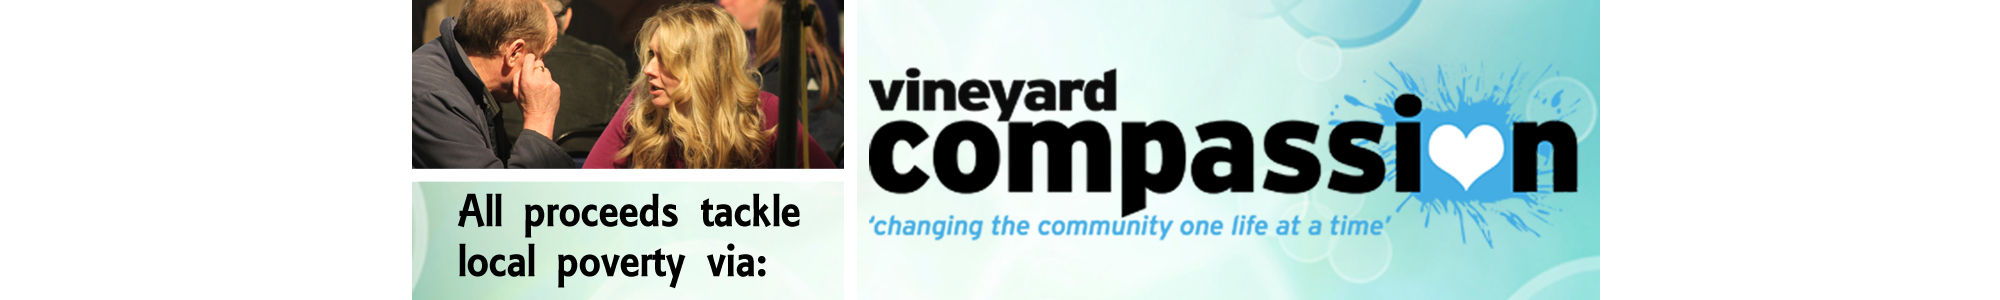 Vineyard compassion